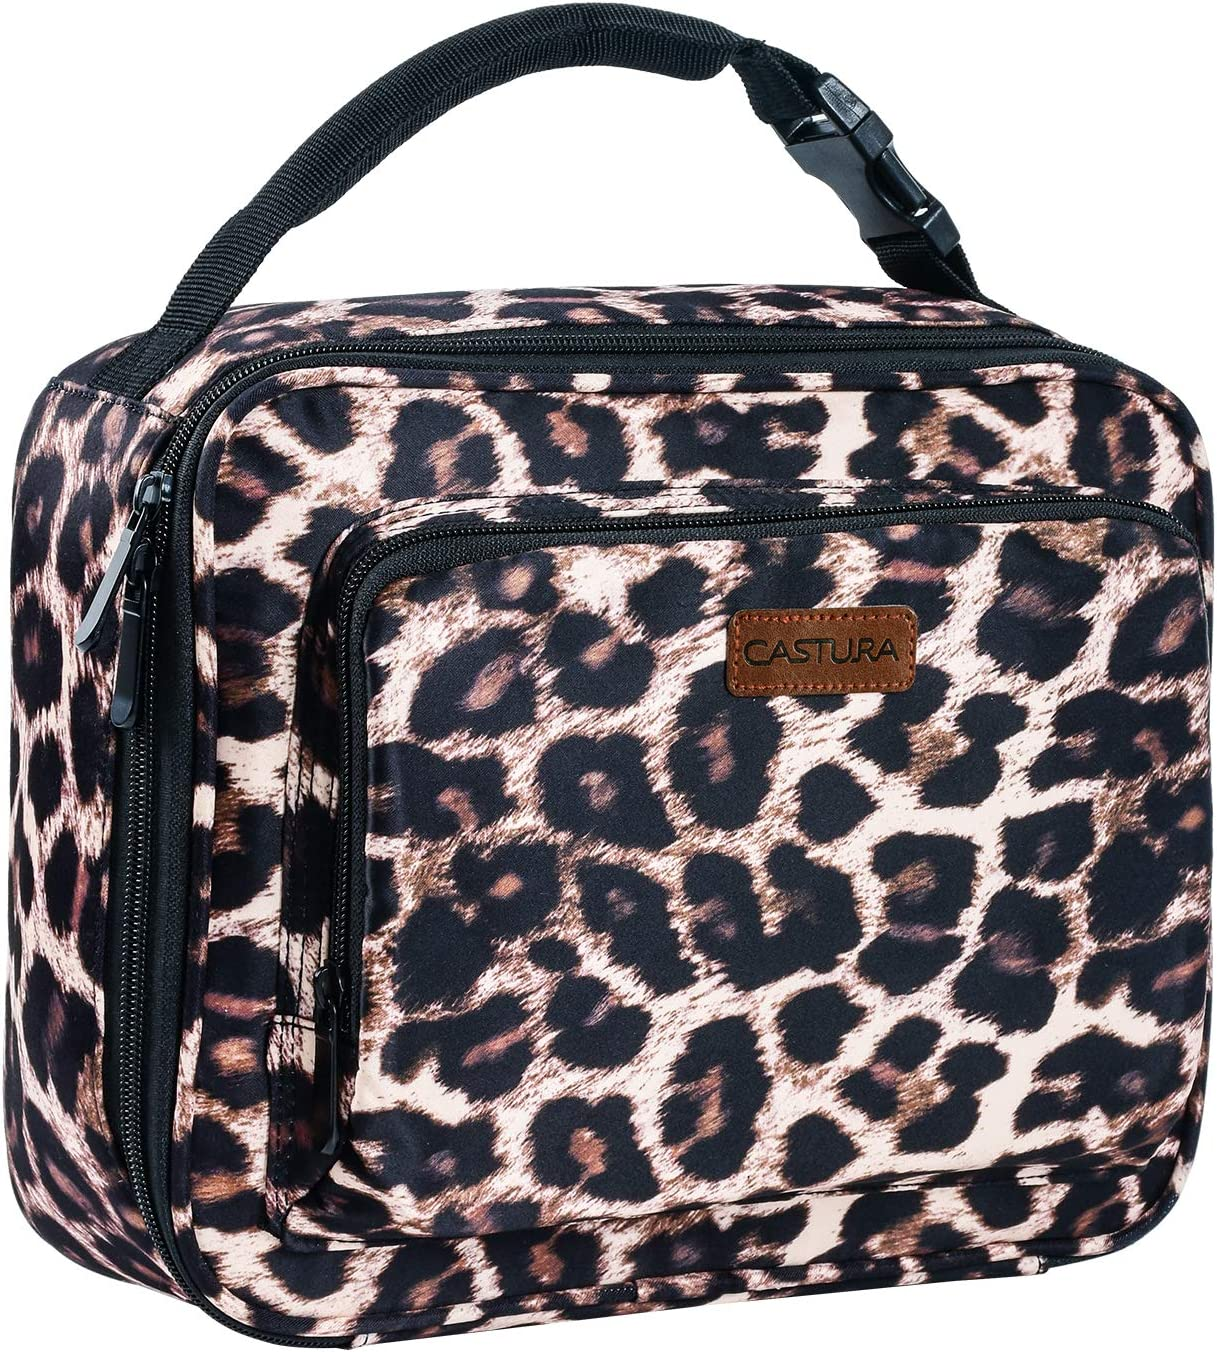 Womens Lunch Box,Insulated Lunch Bag Buckle Handle Lunch Tote Leopard